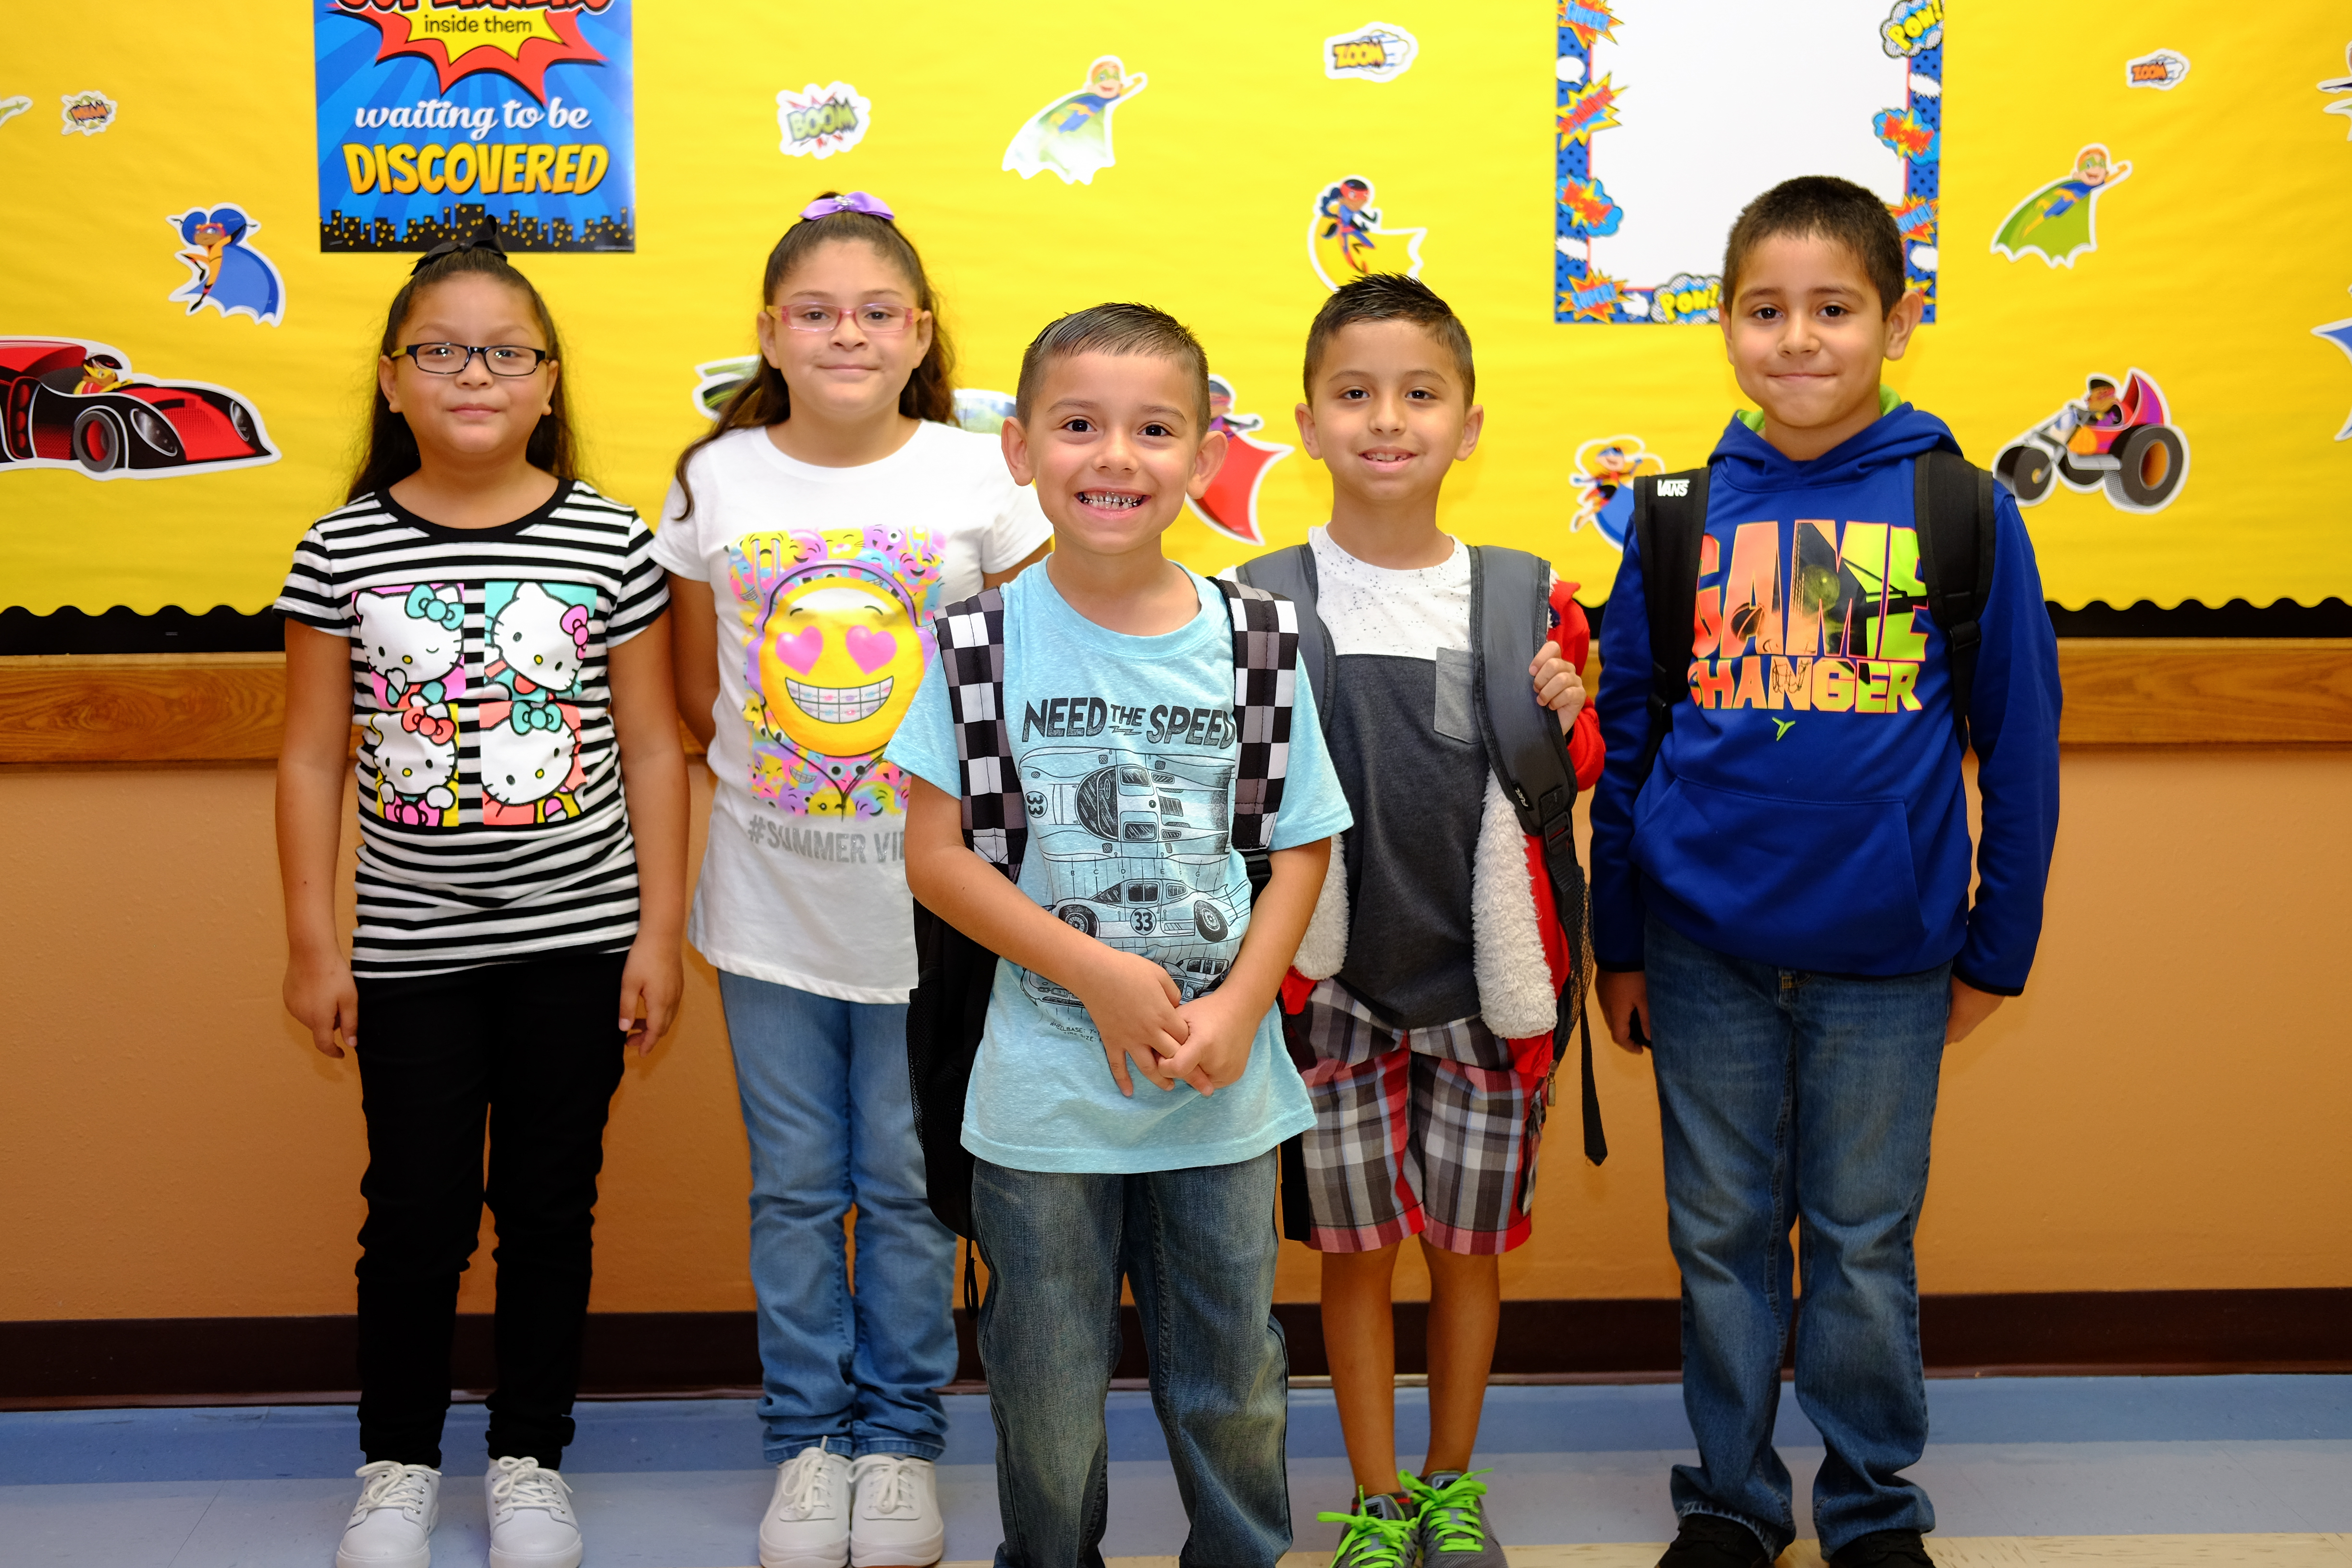 HCISD welcomes students to 2017-2018 school year